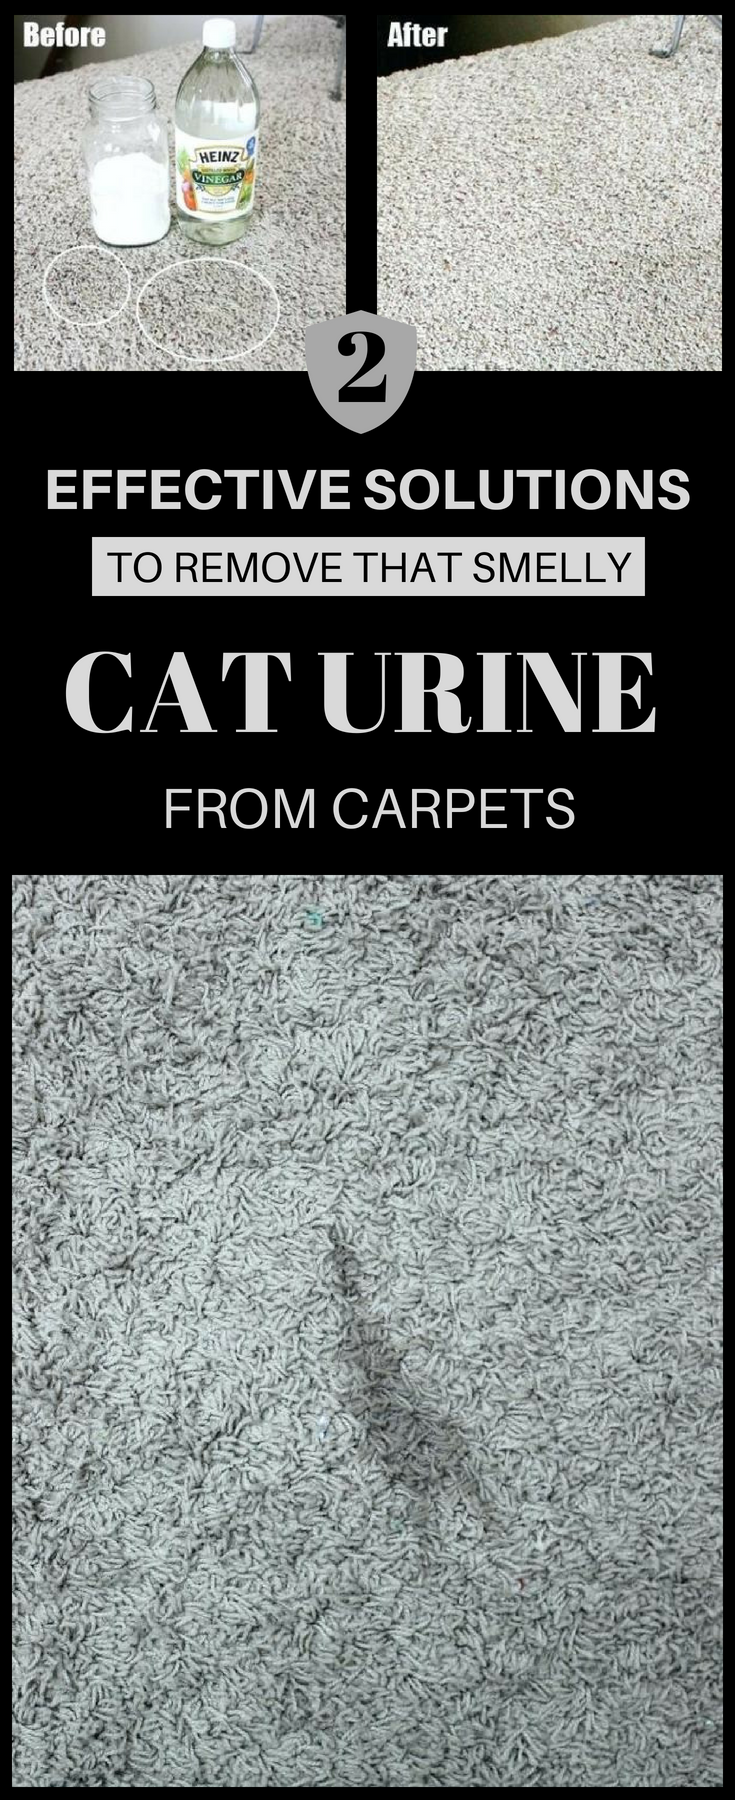 2 Effective Solutions To Remove That Smelly Cat Urine From